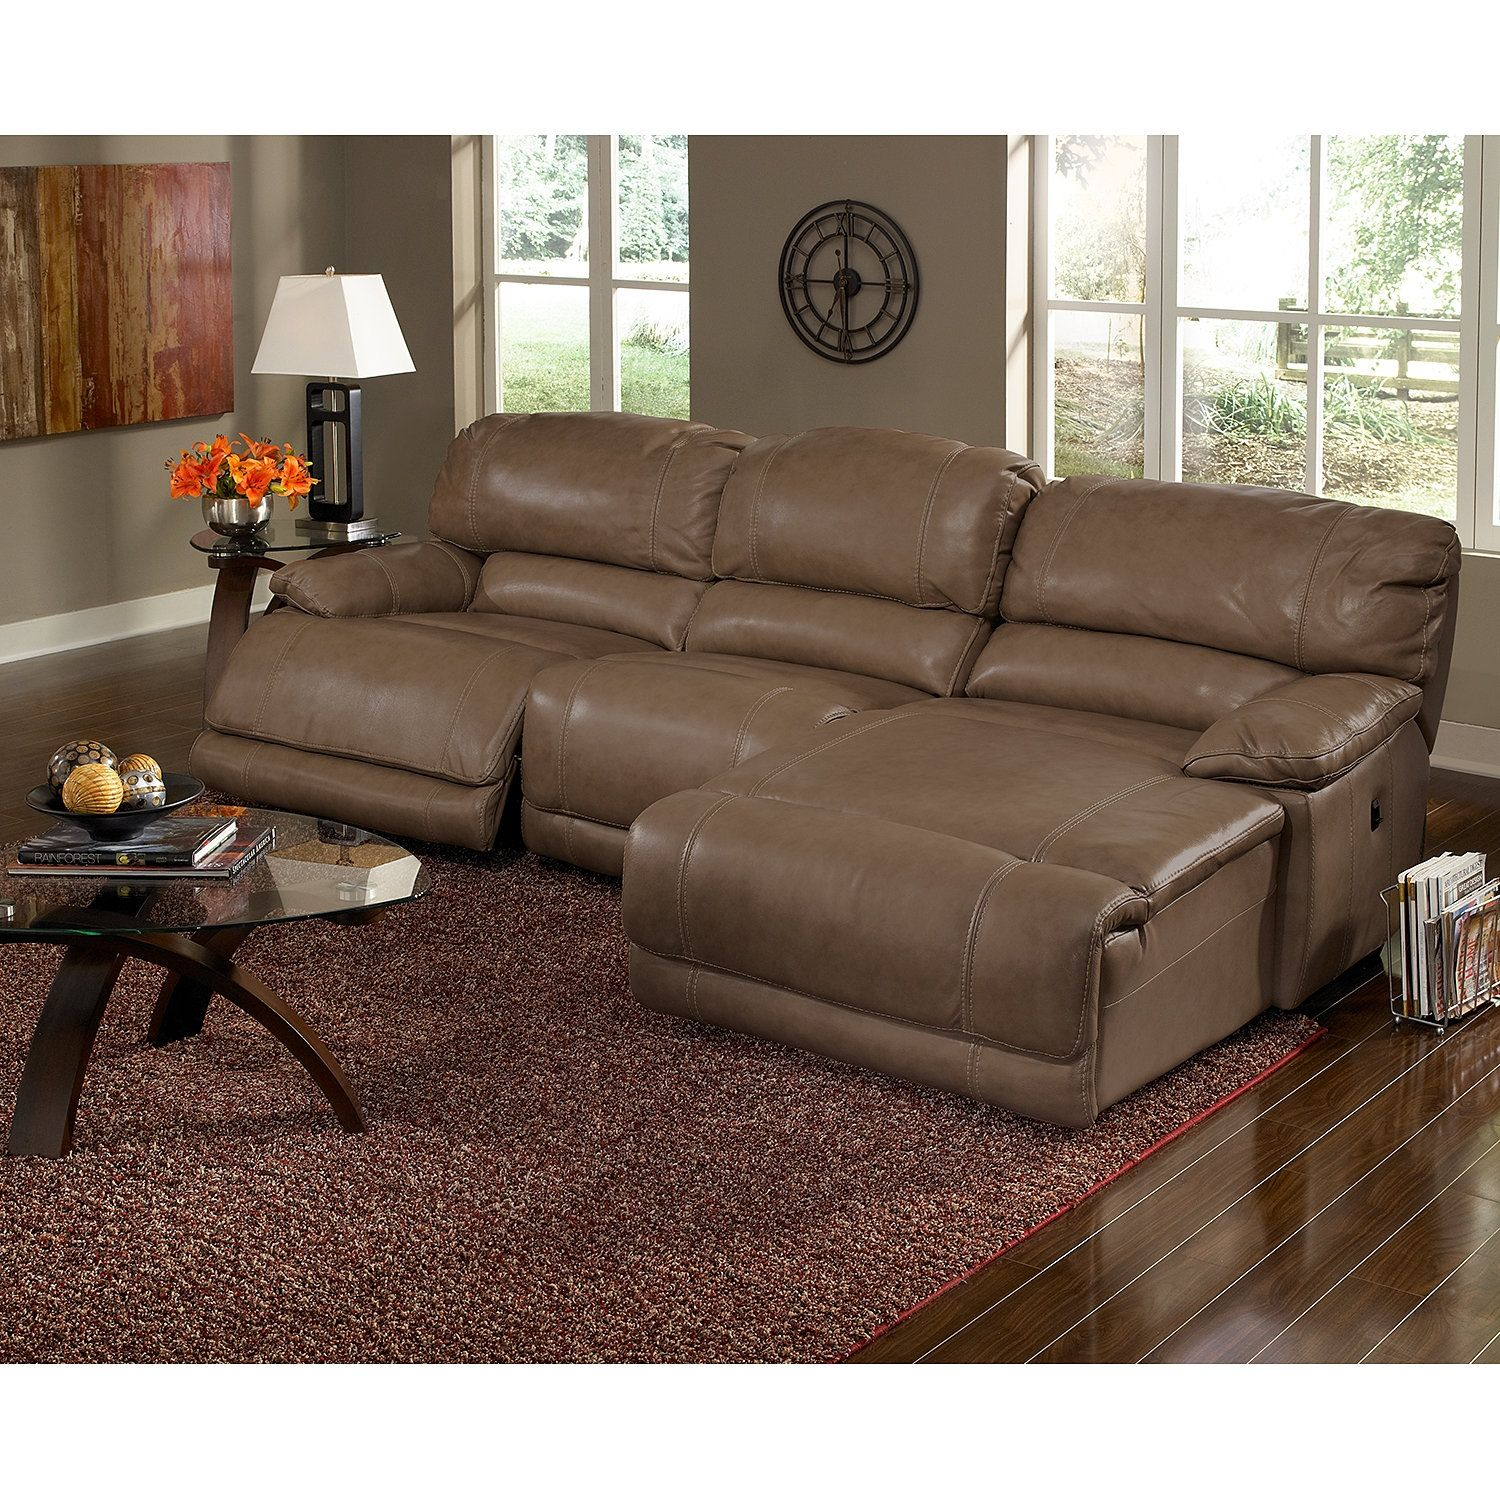 Sofas And Stuff Alton Wall Bed Sofa Vancouver Living Room Furniture St Malo 3 Piece Power Reclining